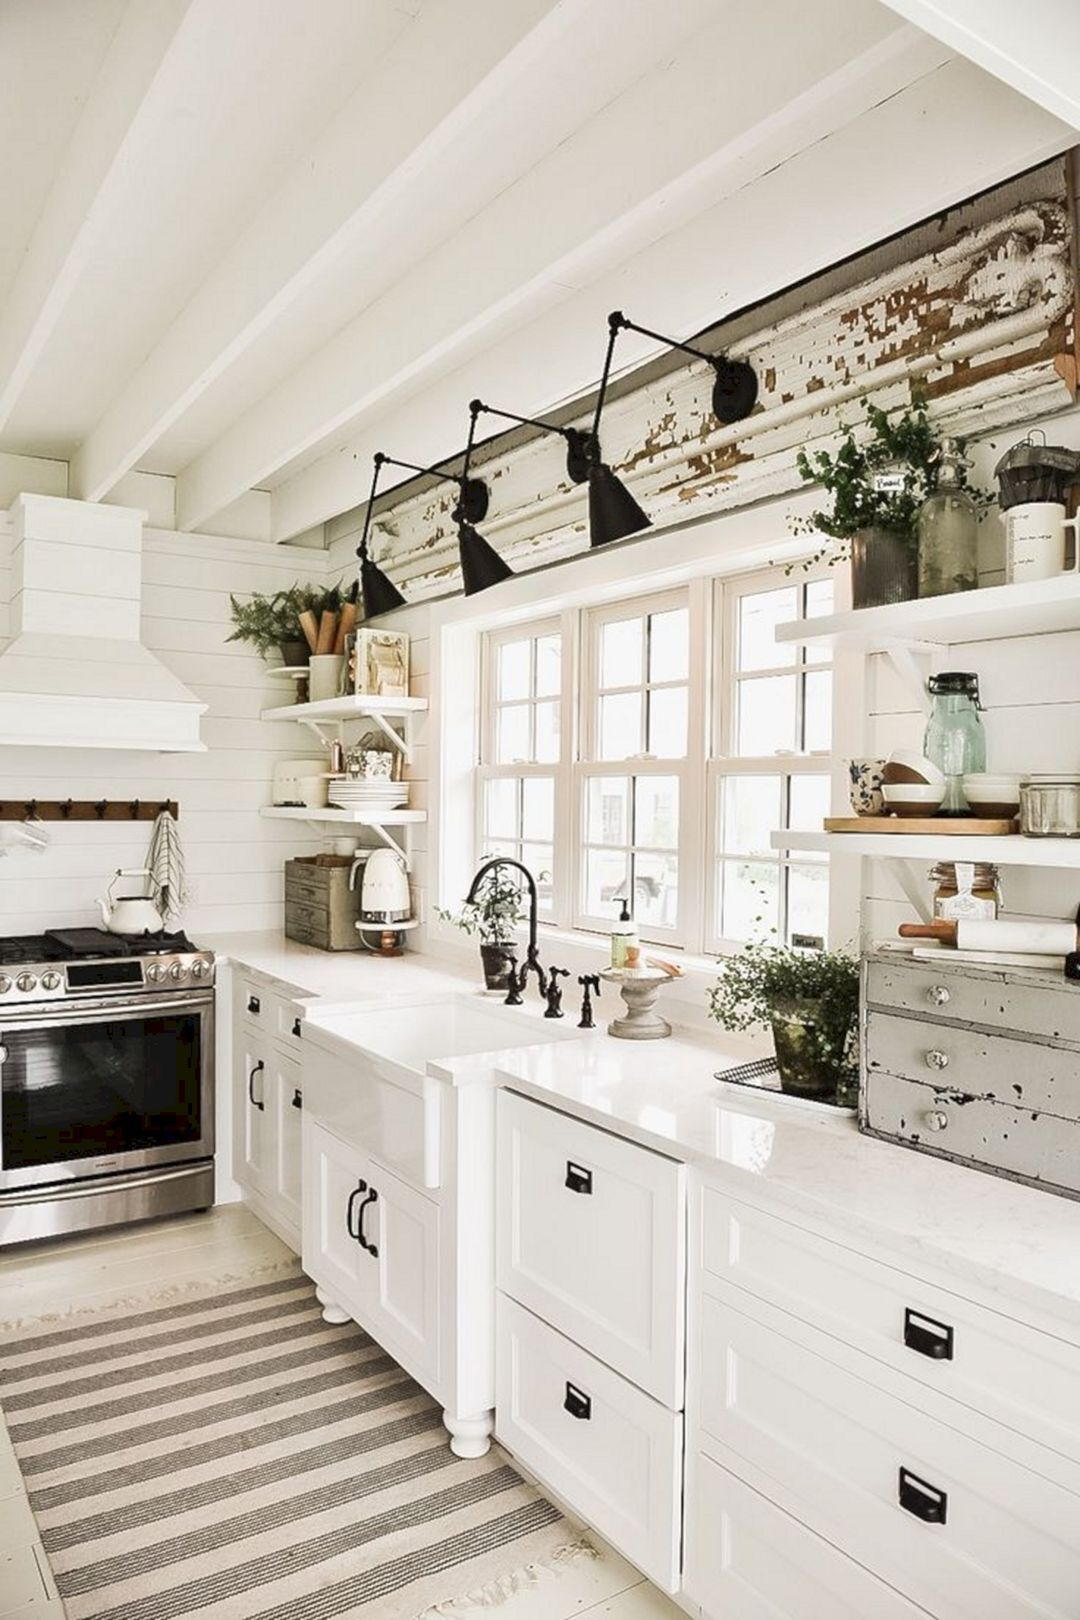 15 Best Awesome Farmhouse Kitchen Decorating Style Ideas You Need To Try - Decor It's